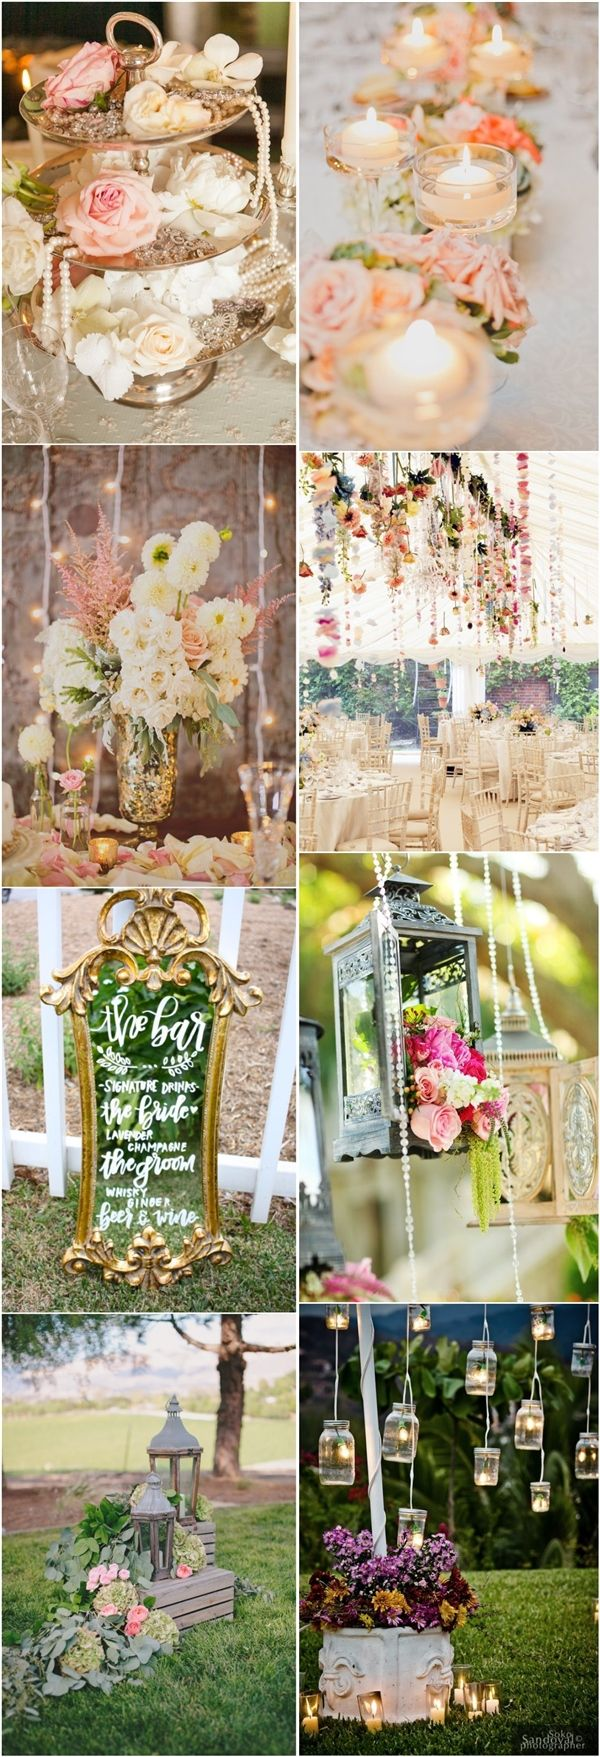 rustic chic vinatge wedding decor ideas - Deer Pearl Flowers